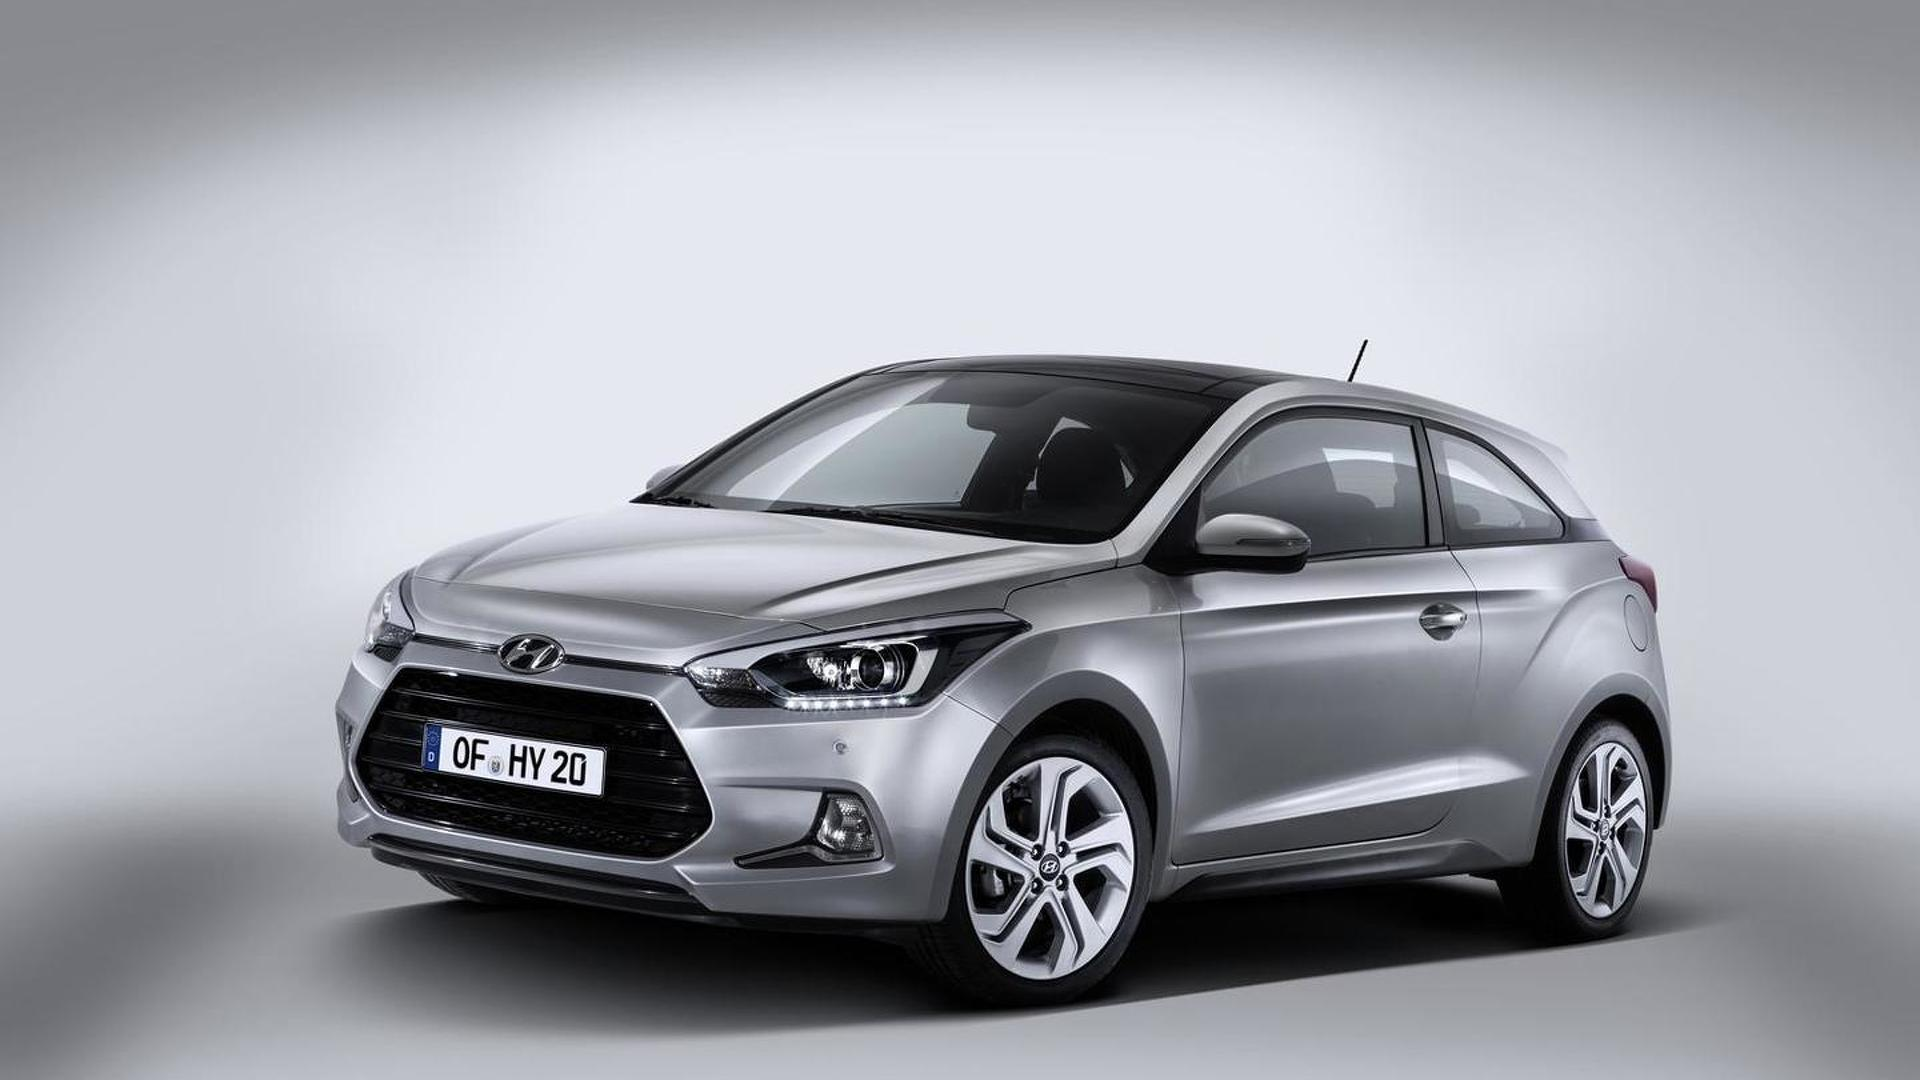 Hyundai i20 Coupe unveiled with sporty looks